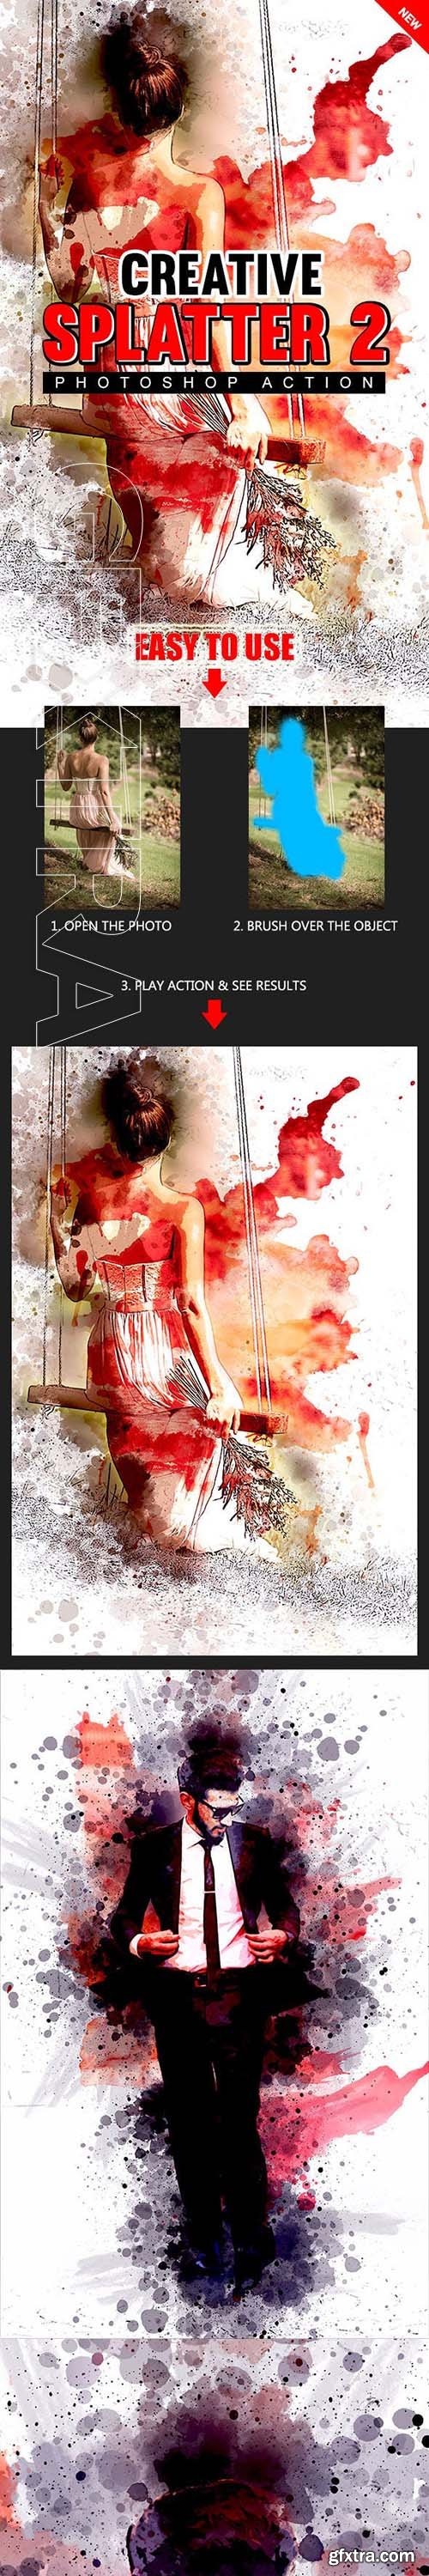 GraphicRiver - Creative Splatter 2 Photoshop Action 23160835